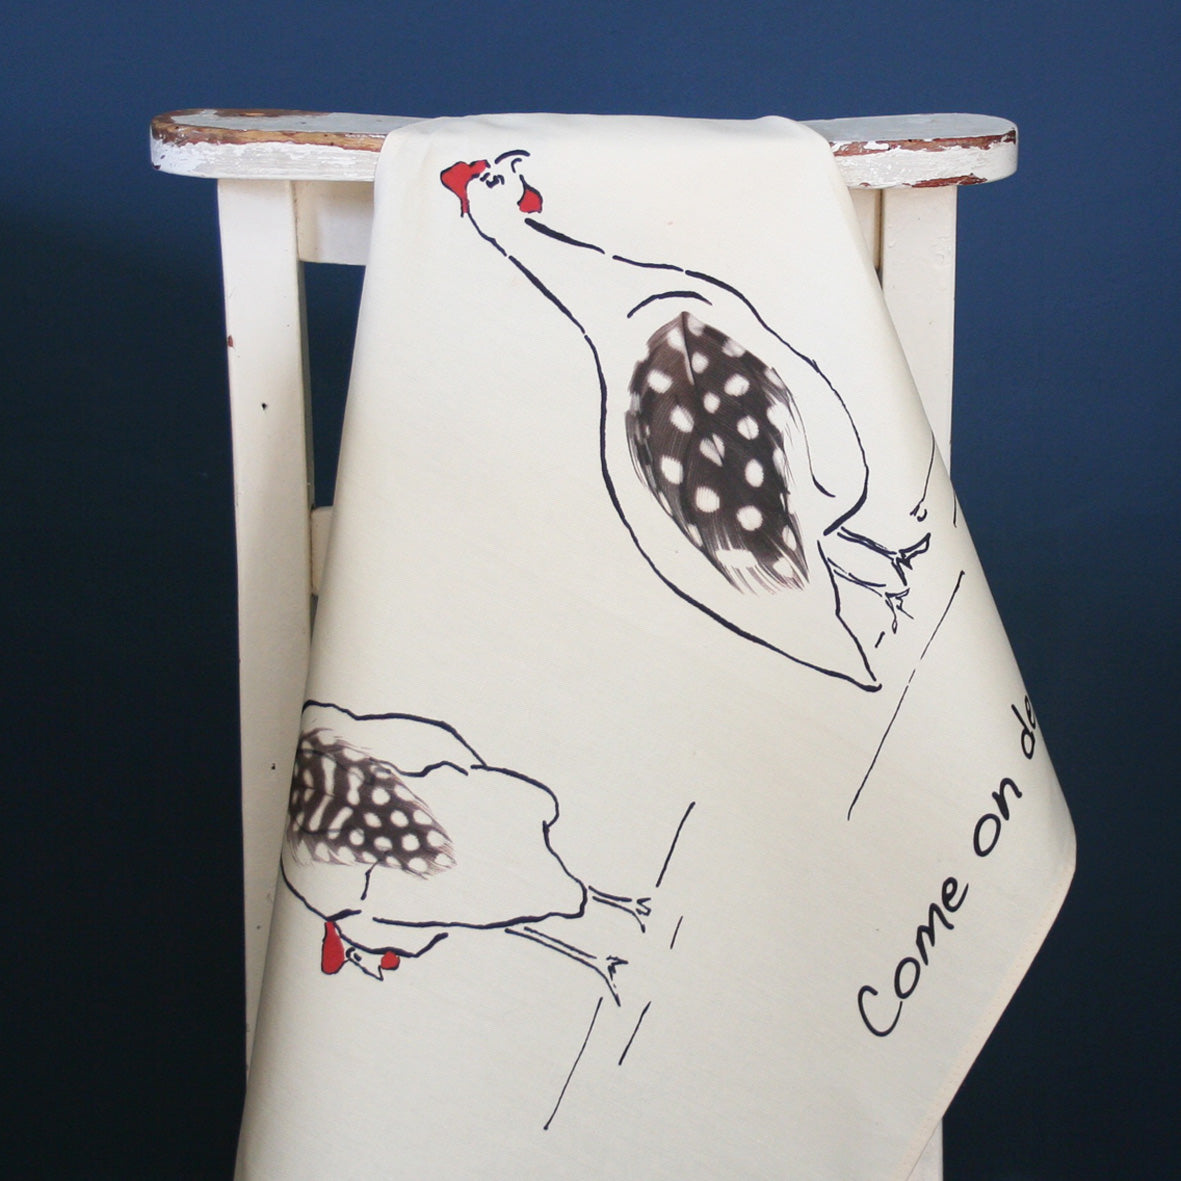 Guinea fowl tea towel from Cluck Cluck!